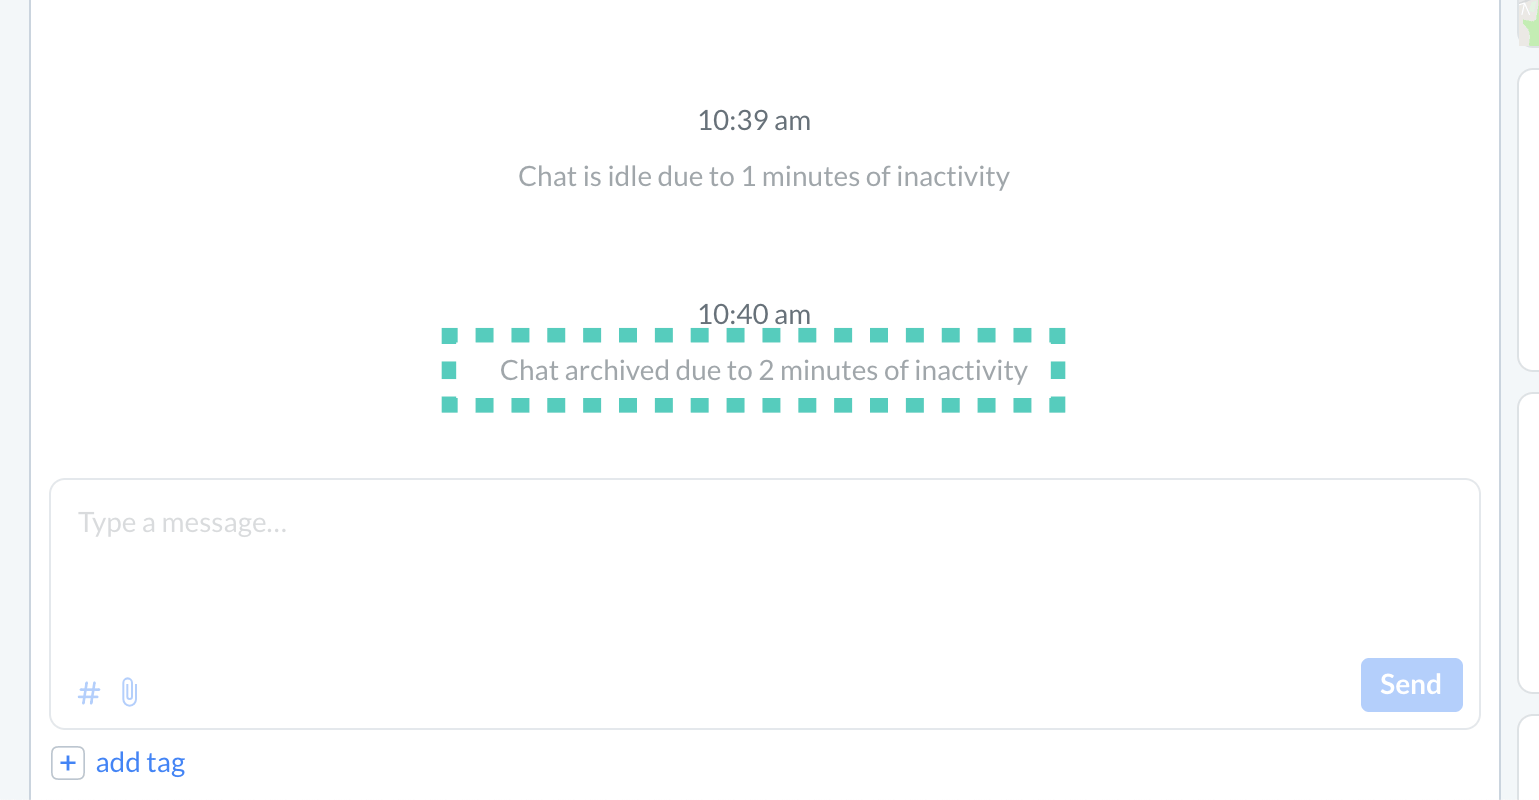 Close the chat due to inactivity